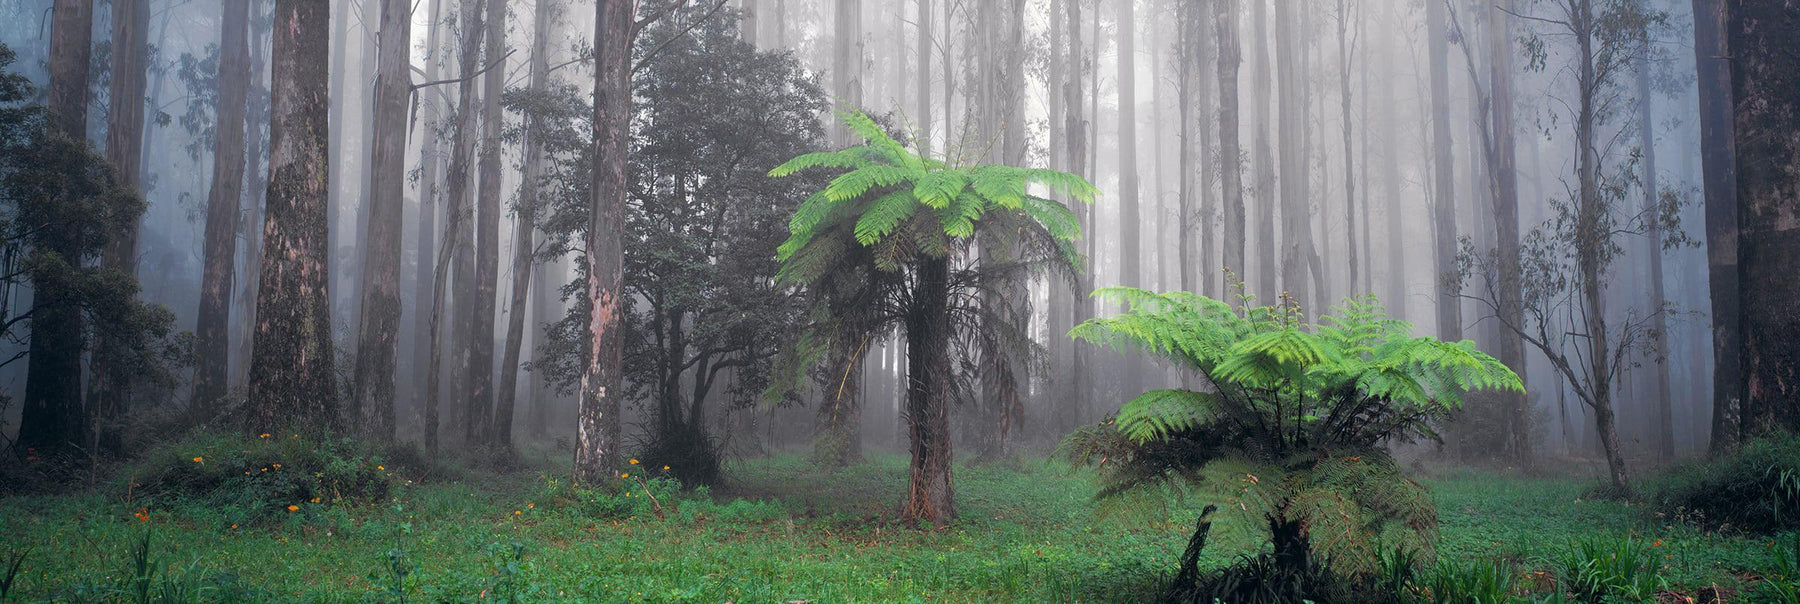 Mist filled tropical forest in the Dandenong Mountain Ranges of Australia